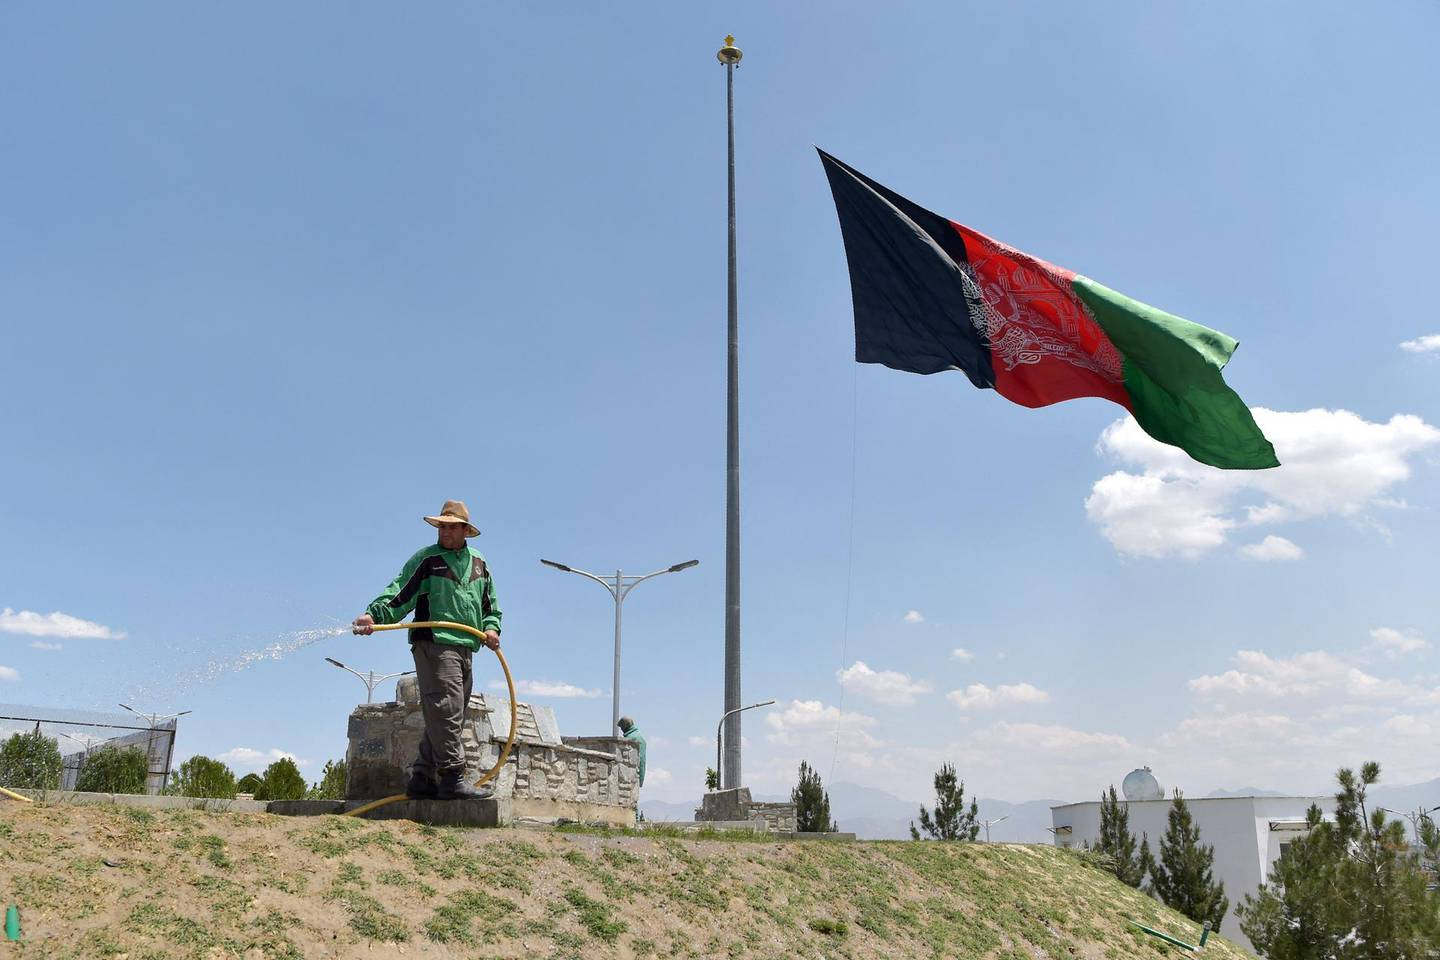 A worker waters a lawn near an Afghan national flag flying at half-mast in Kabul on May 11, 2021 during a national day of mourning announced by Afghan President Ashraf Ghani to condemn the recent terrorist attacks. / AFP / WAKIL KOHSAR